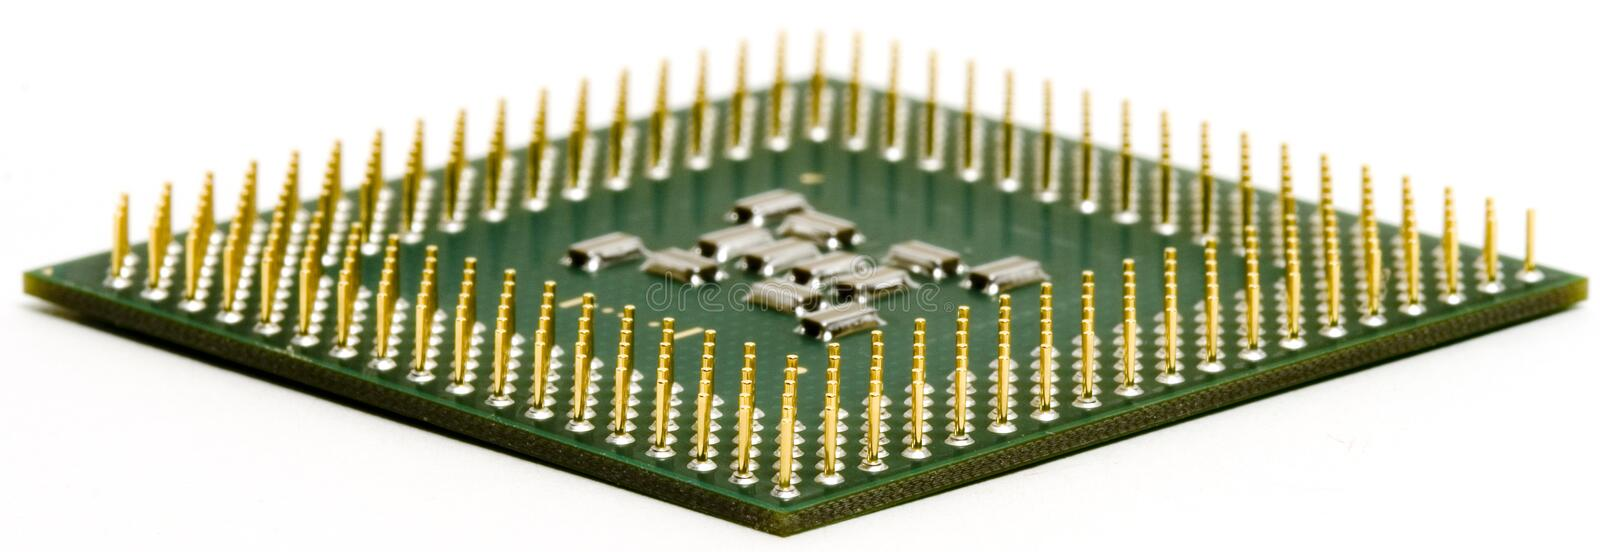 Download Flat CPU stock image. Image of electronics, giga, billions - 385087